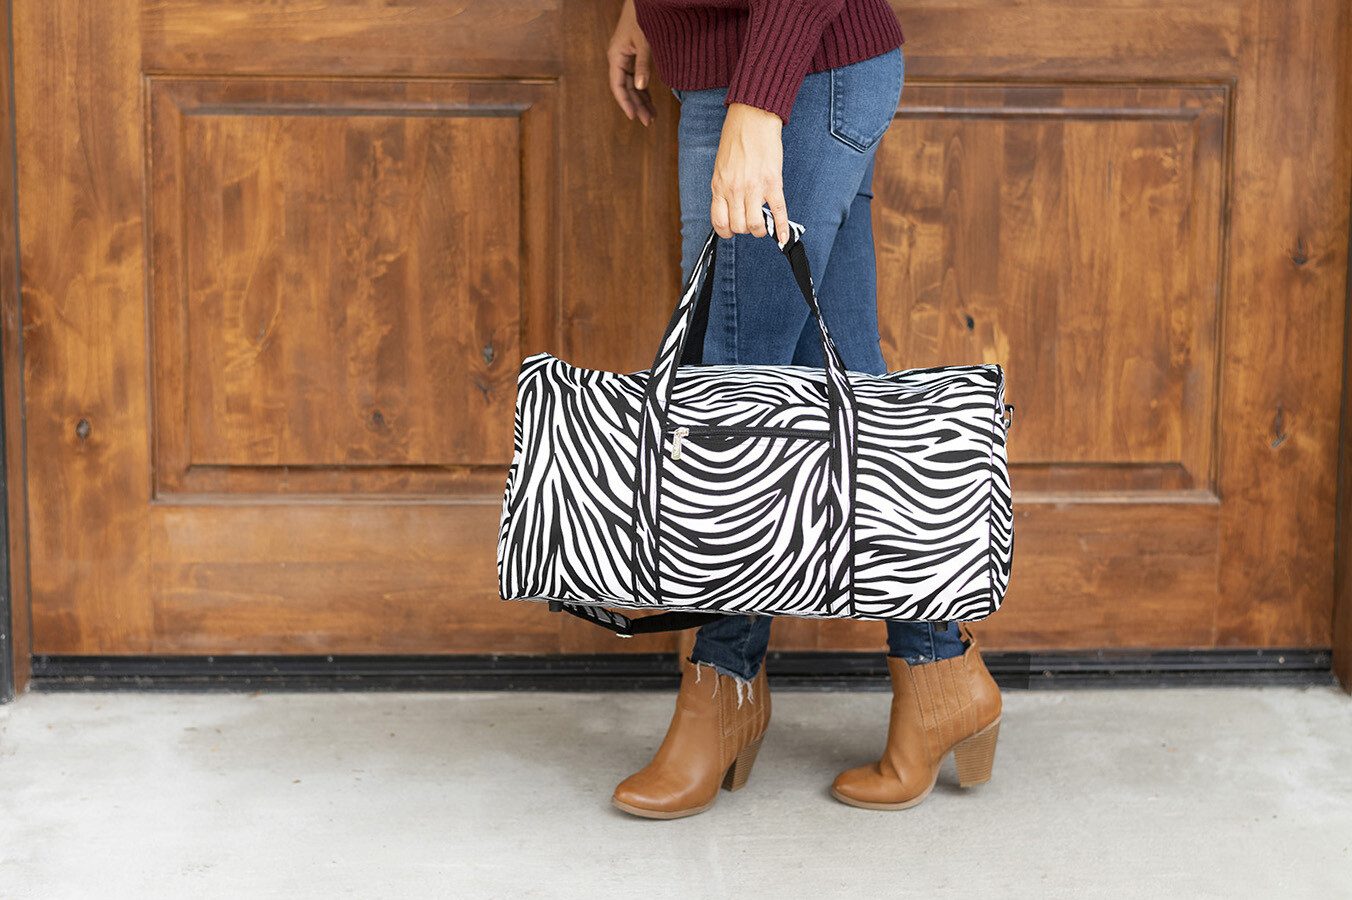 Zebra Duffel Bag